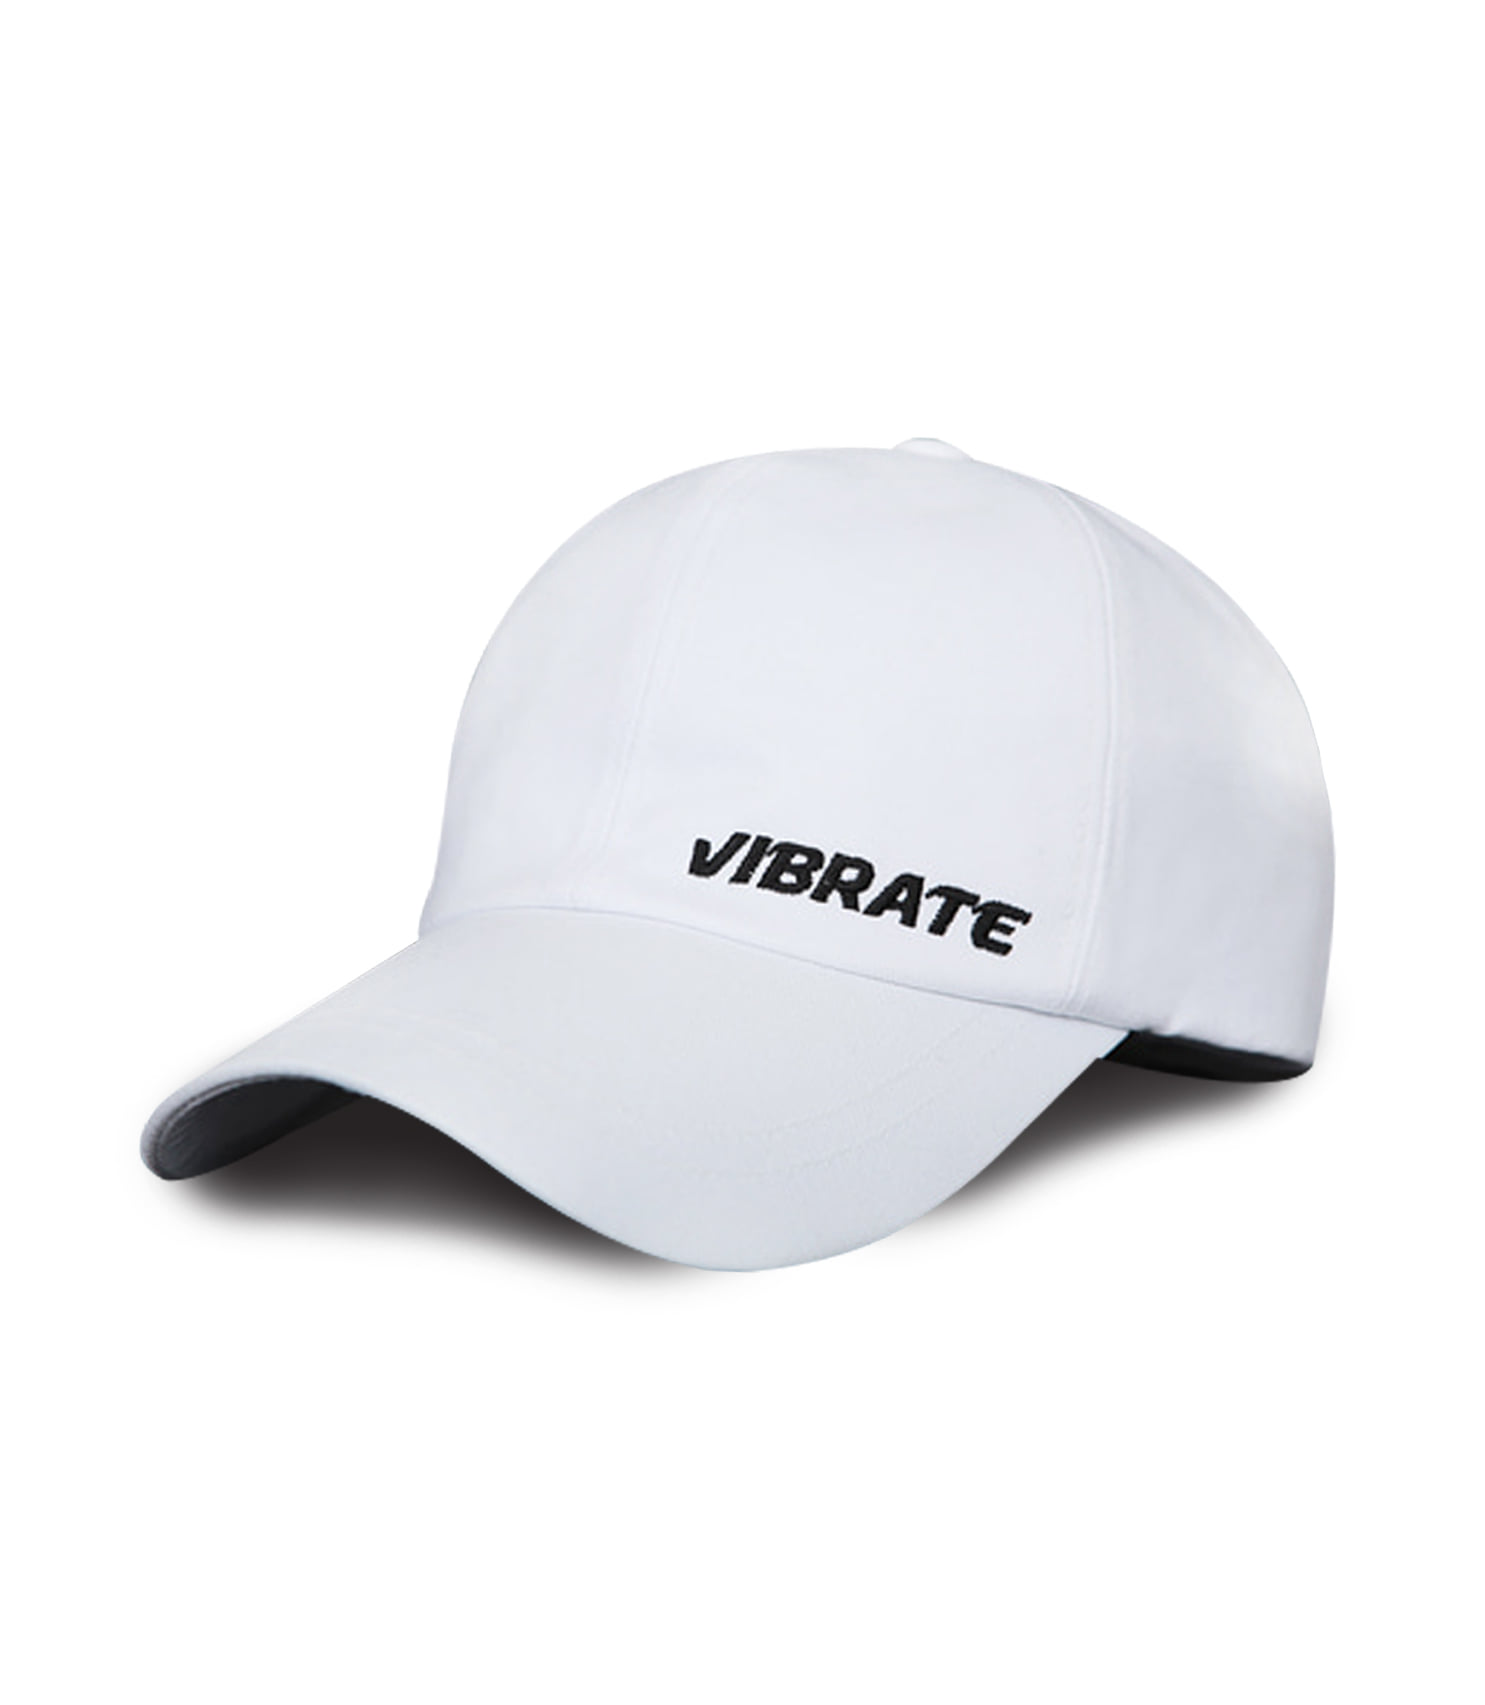 VIBRATE - BASIC SIDE LOGO BALL CAP (WHITE)